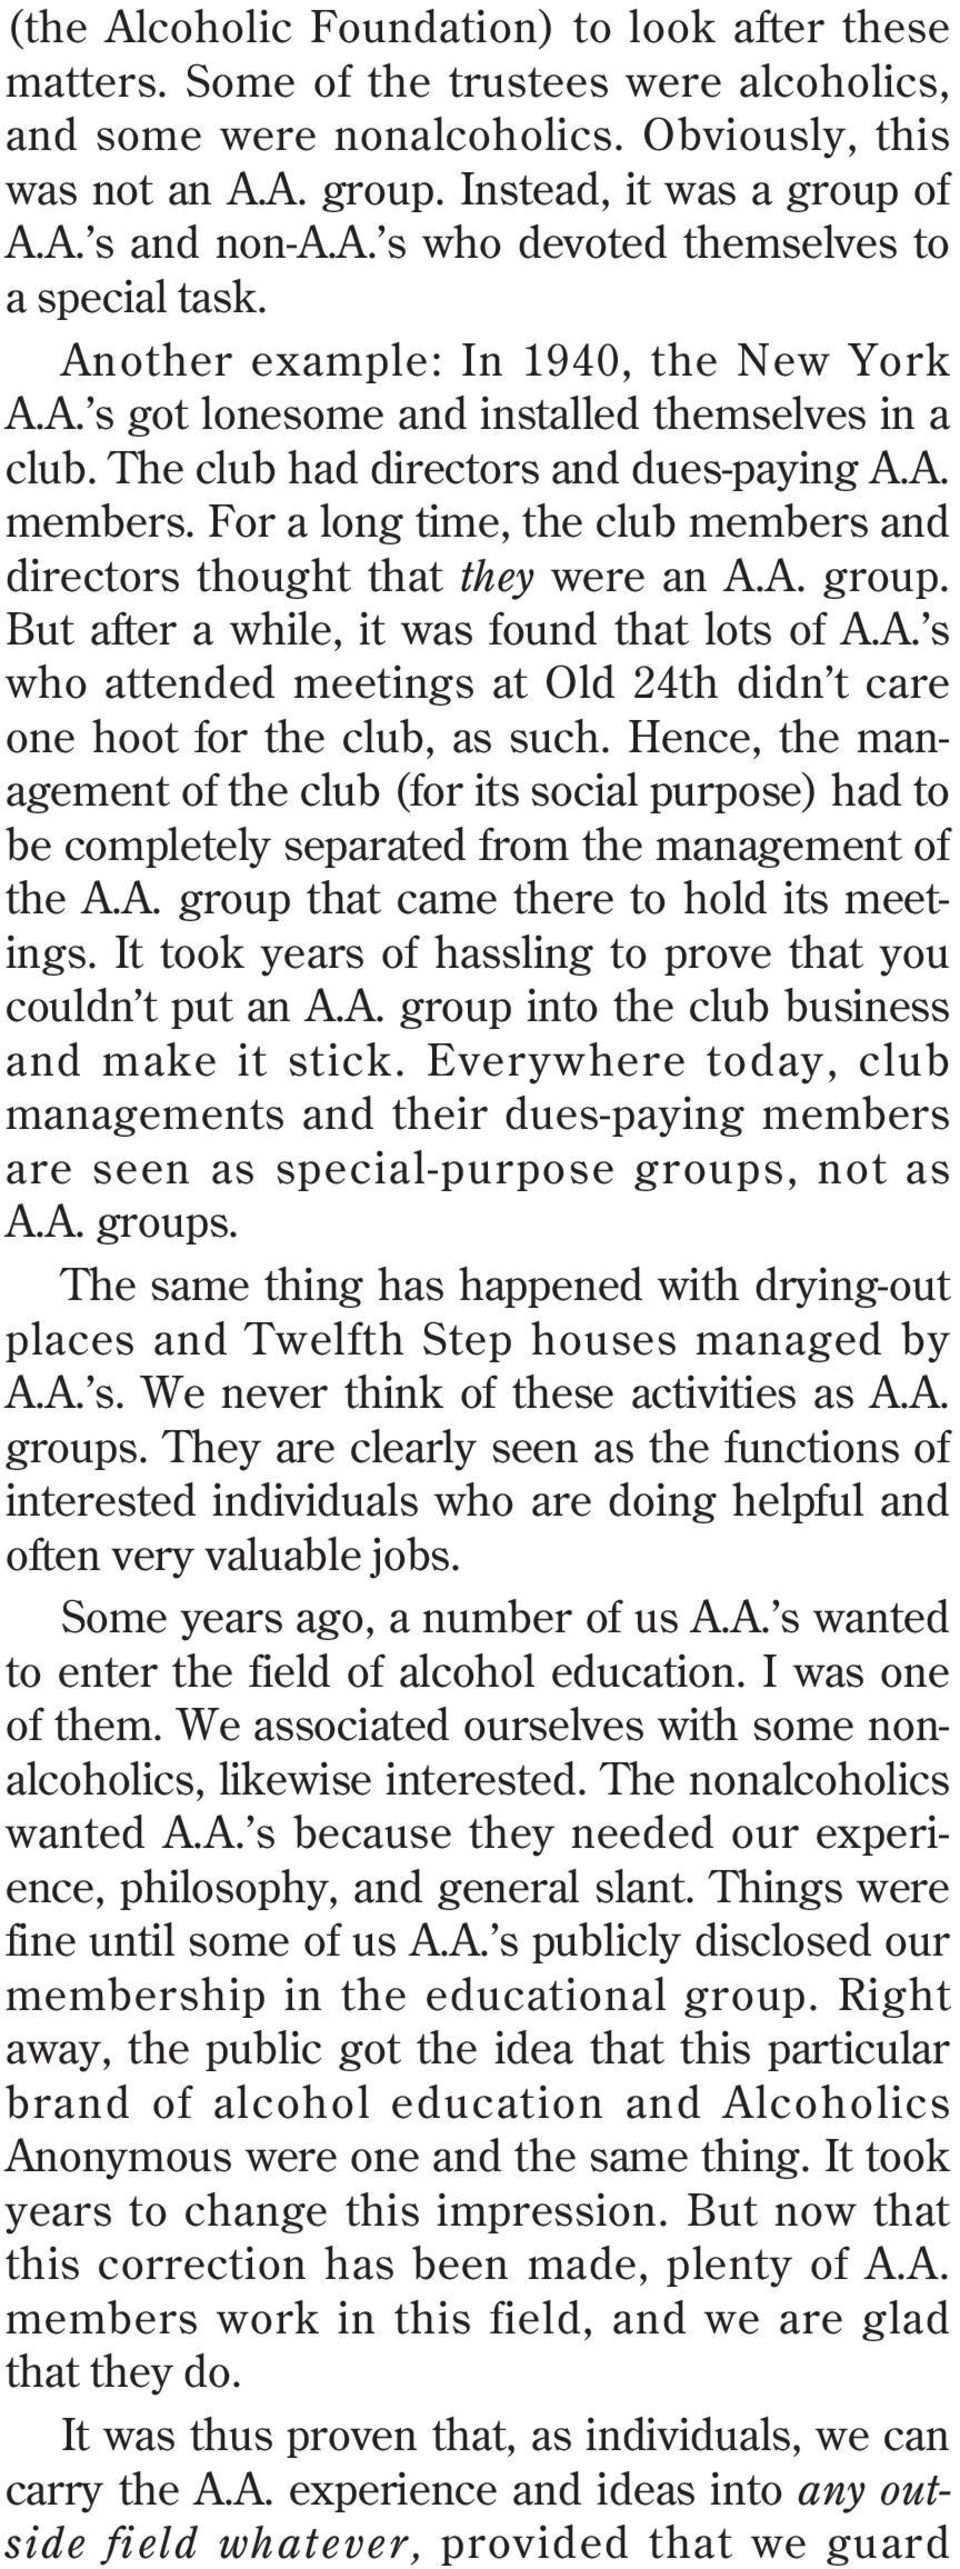 For a long time, the club members and directors thought that they were an A.A. group. But after a while, it was found that lots of A.A. s who attended meetings at Old 24th didn t care one hoot for the club, as such.